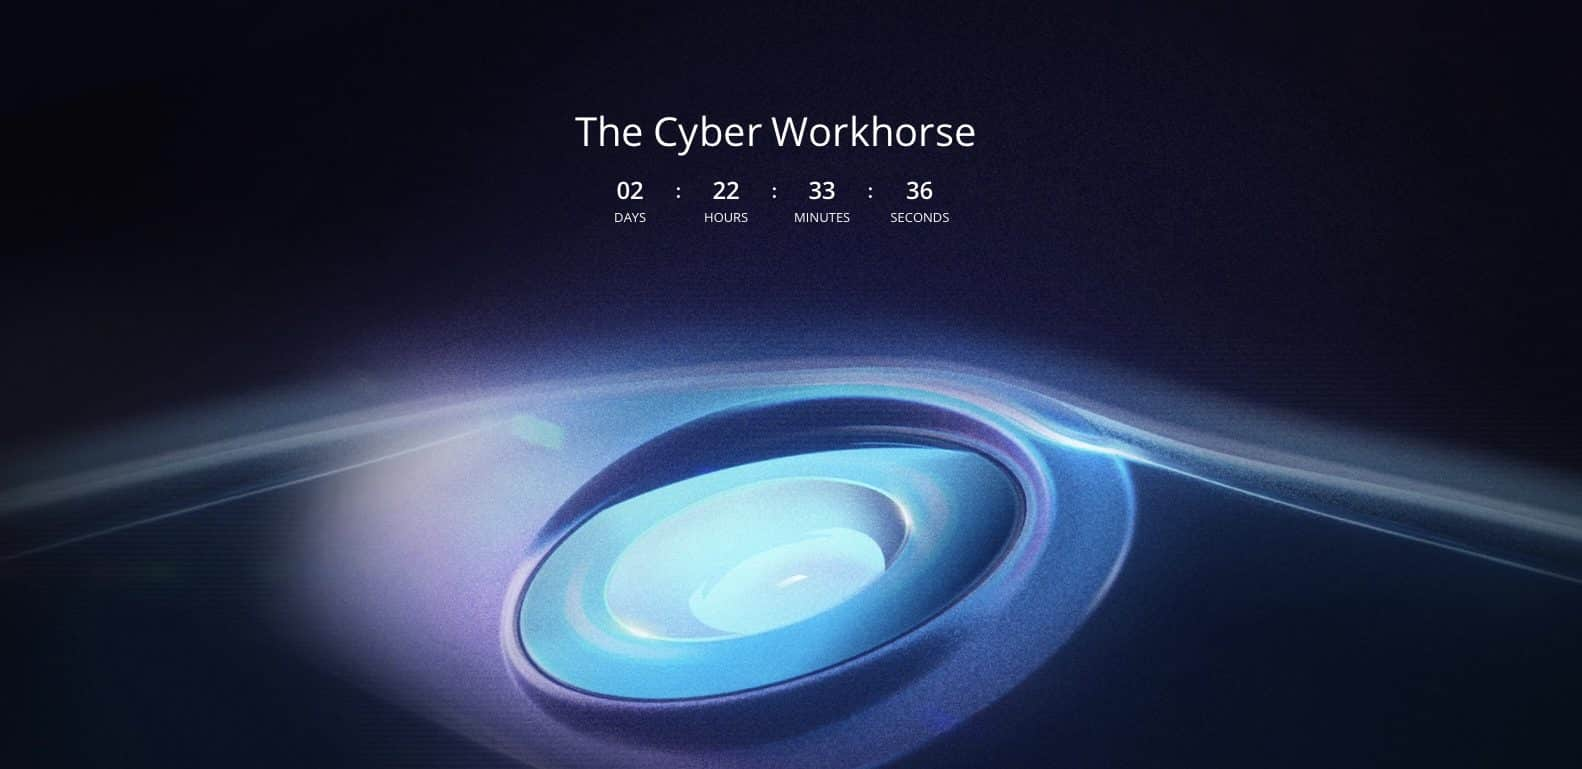 DJI announces new Cyber Workhorse to arrive on May 7th